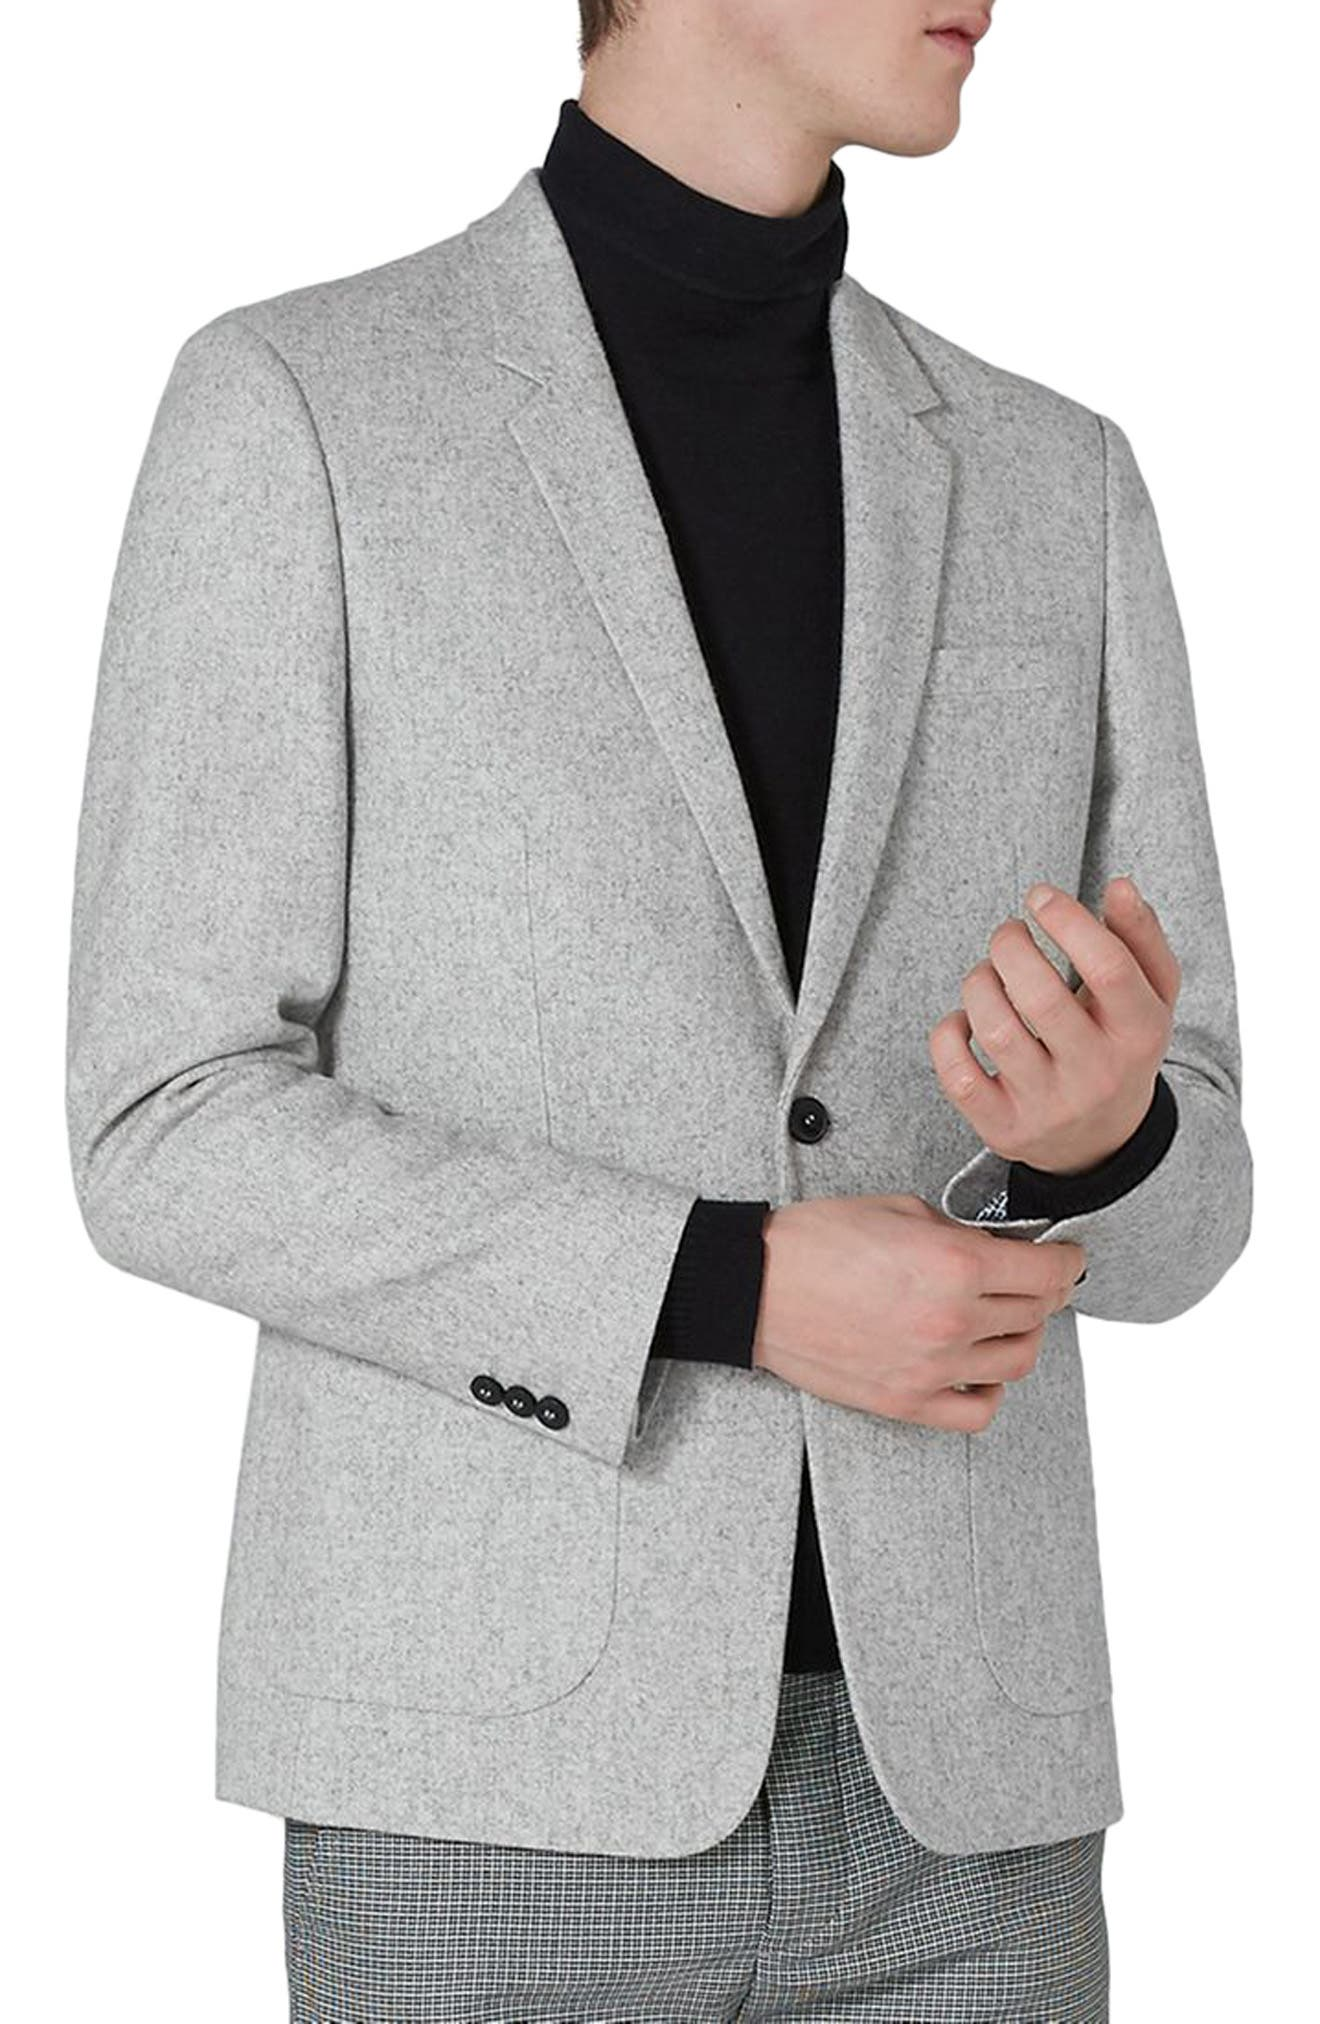 Murdoch One-Button Jacket,                         Main,                         color, Light Grey